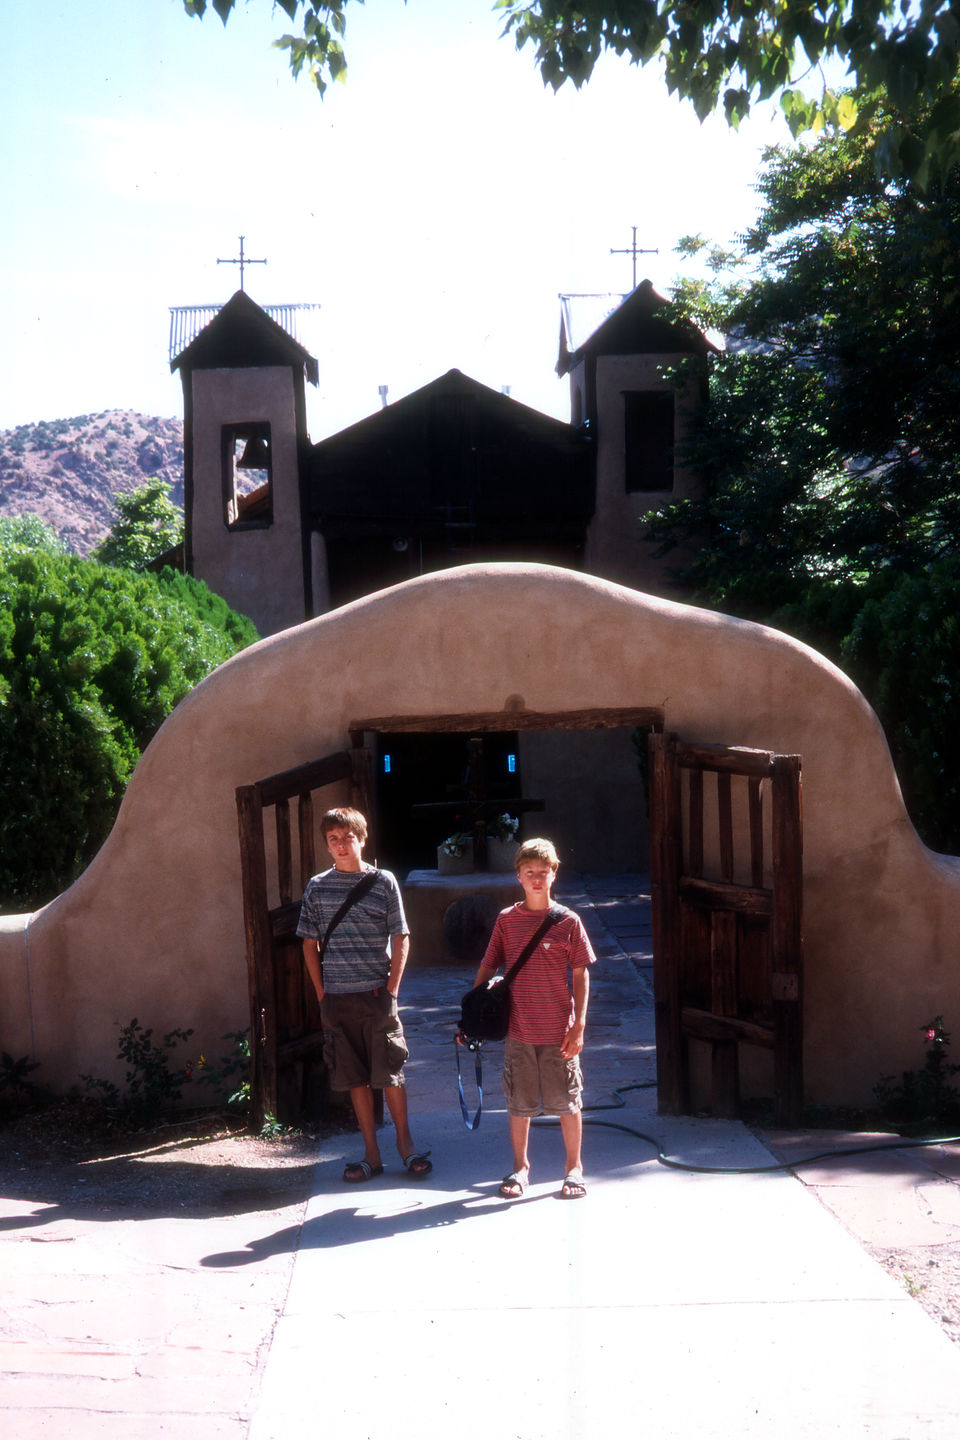 Boys by Sanctuario de Chimayo